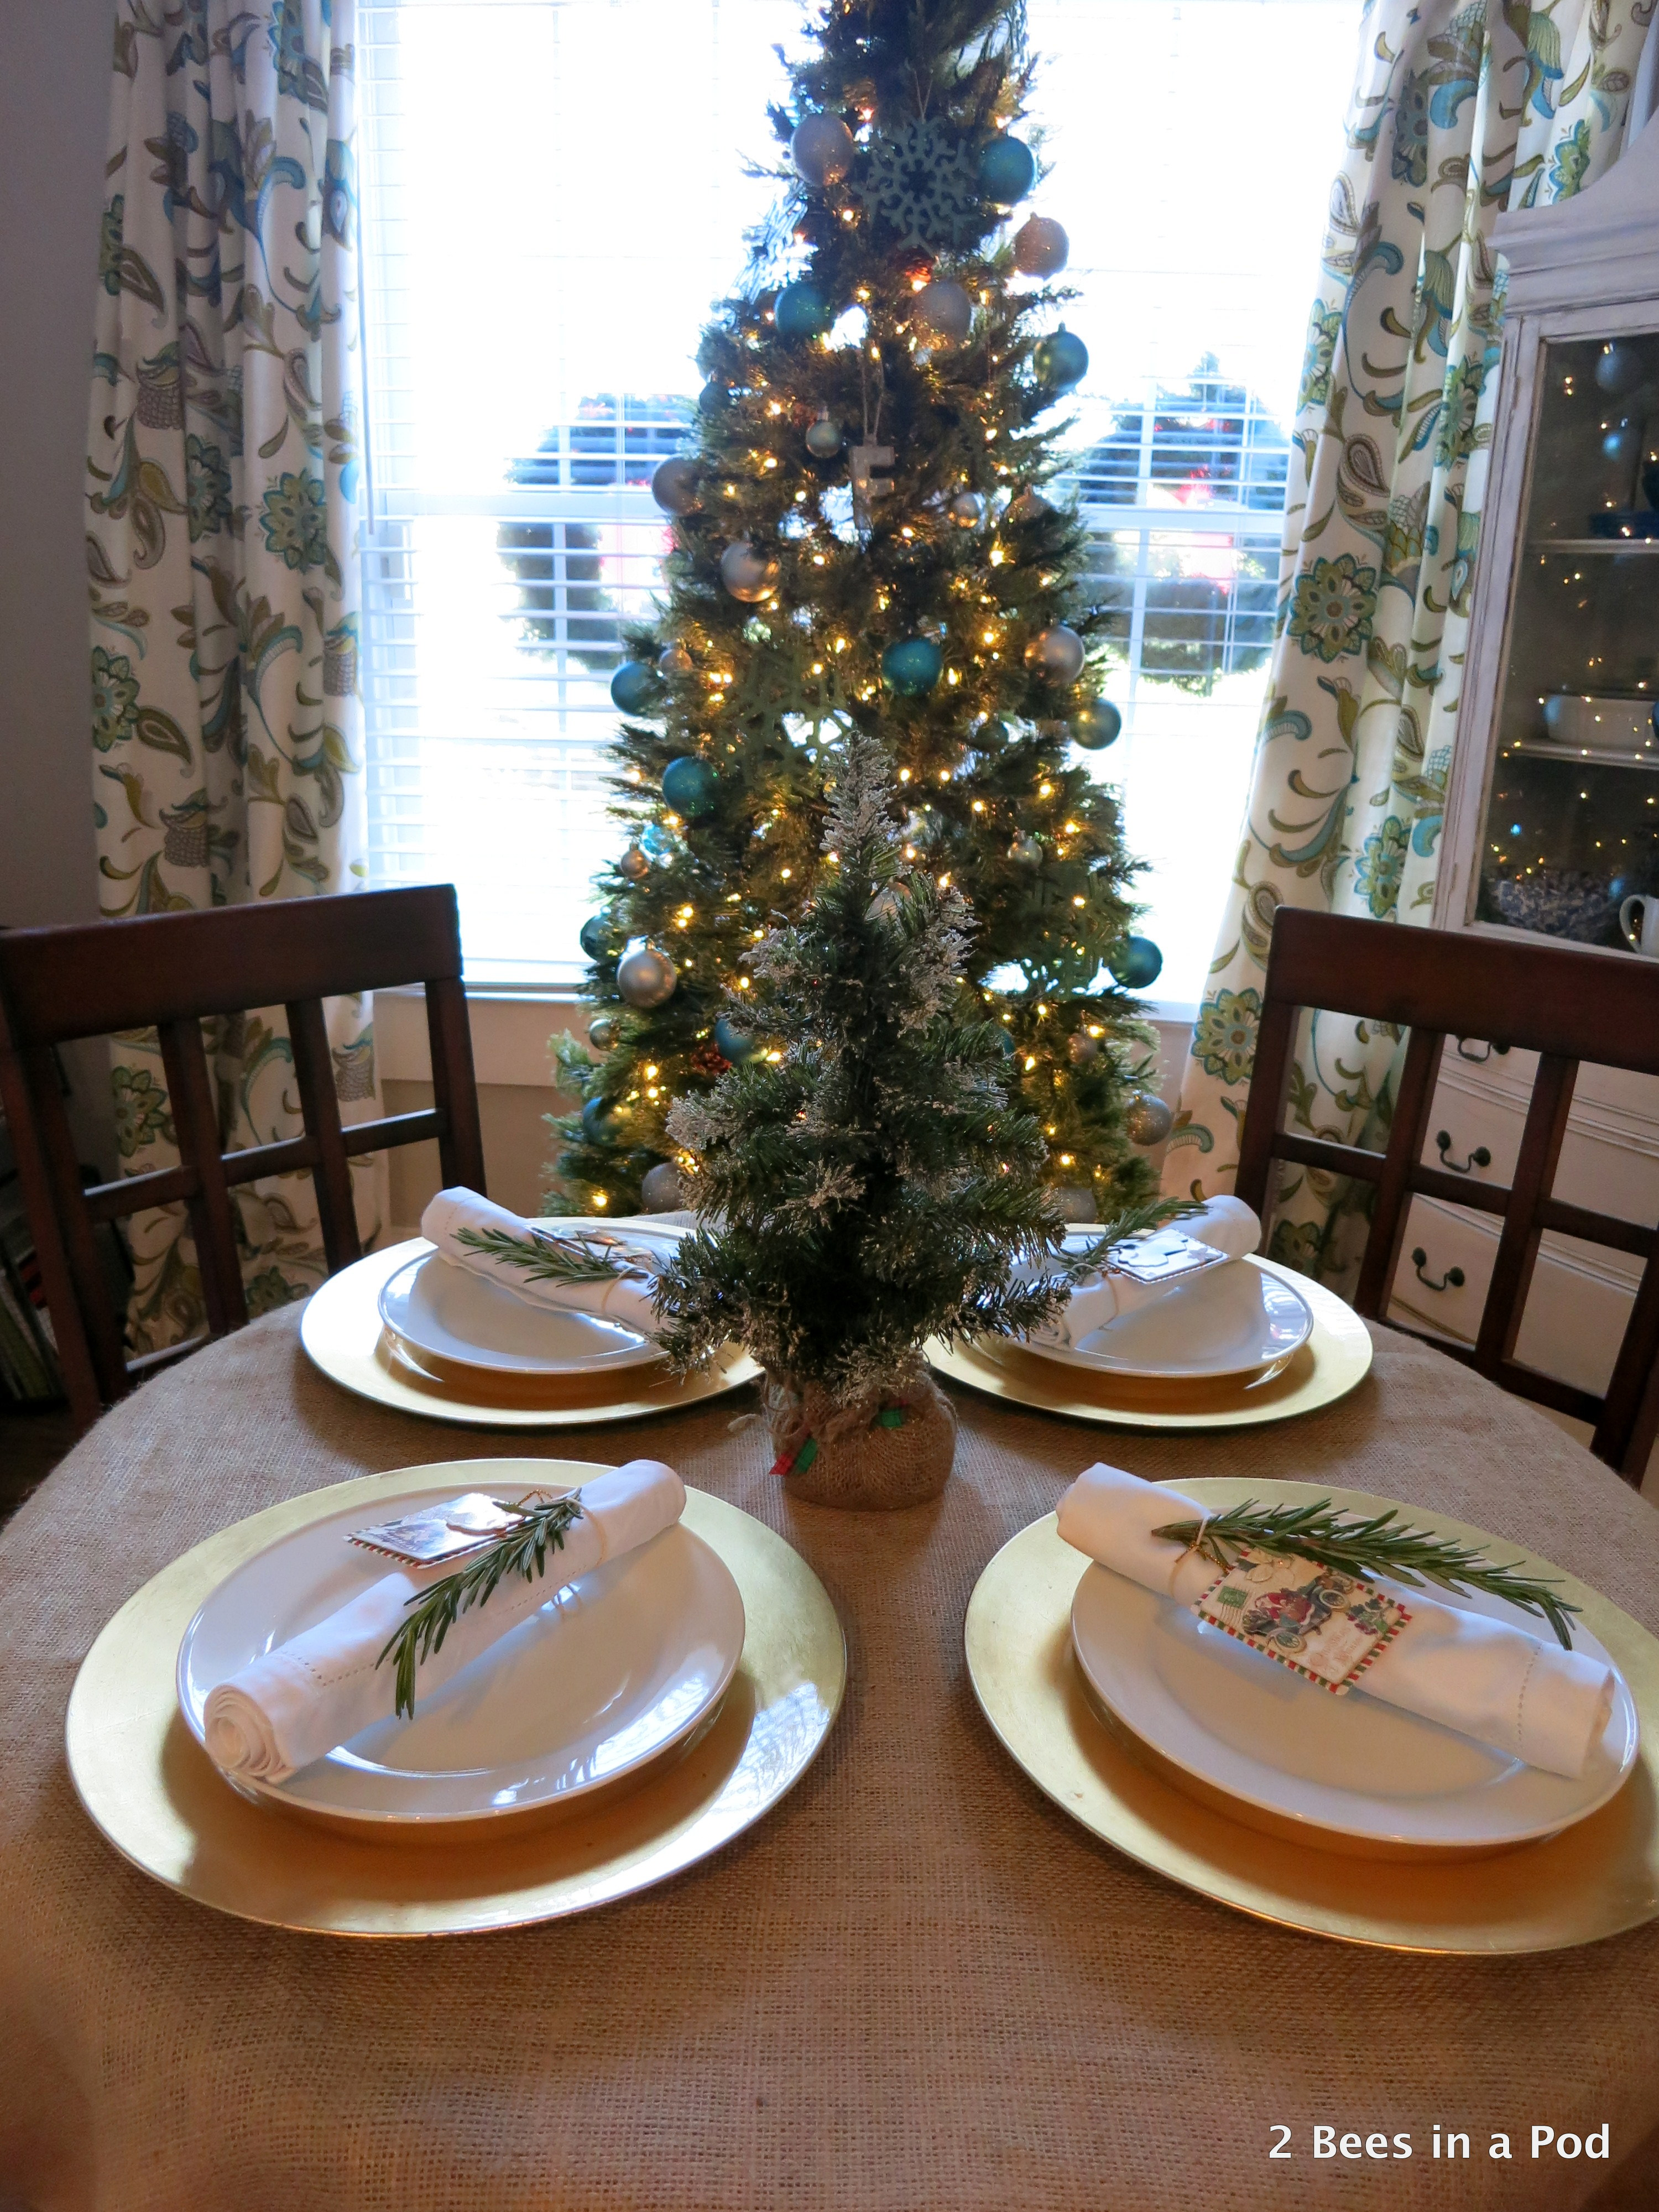 Christmas Home Tour - Dining Room Table with Burlap & Rosemary